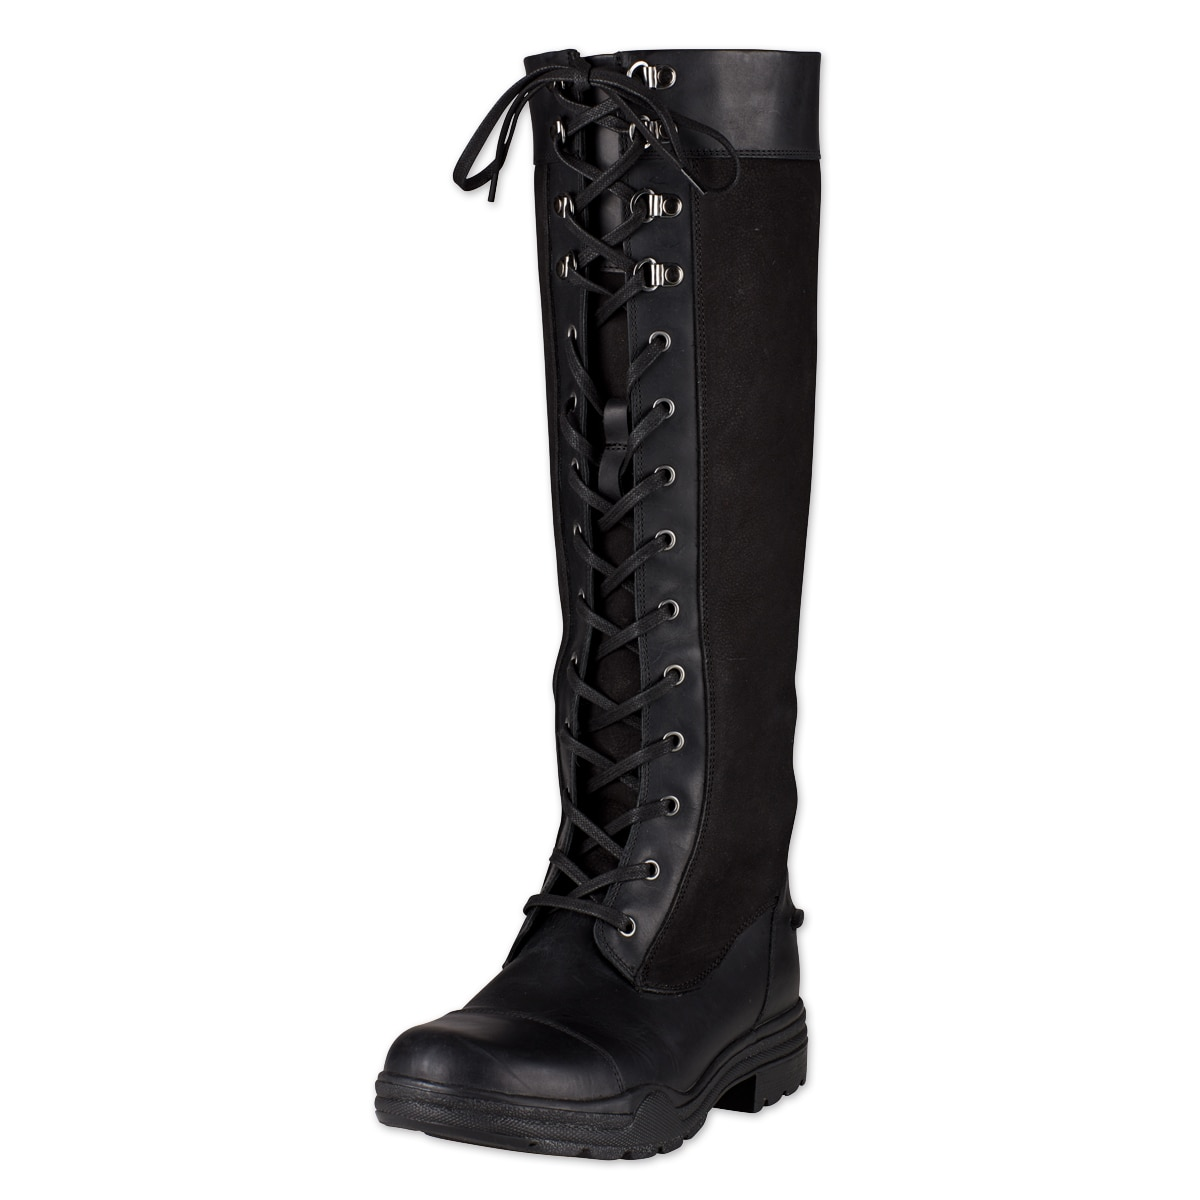 In Stock Blue Shock Boots Pair Ships Today ***FREE 1-3 DAY SHIPPING***